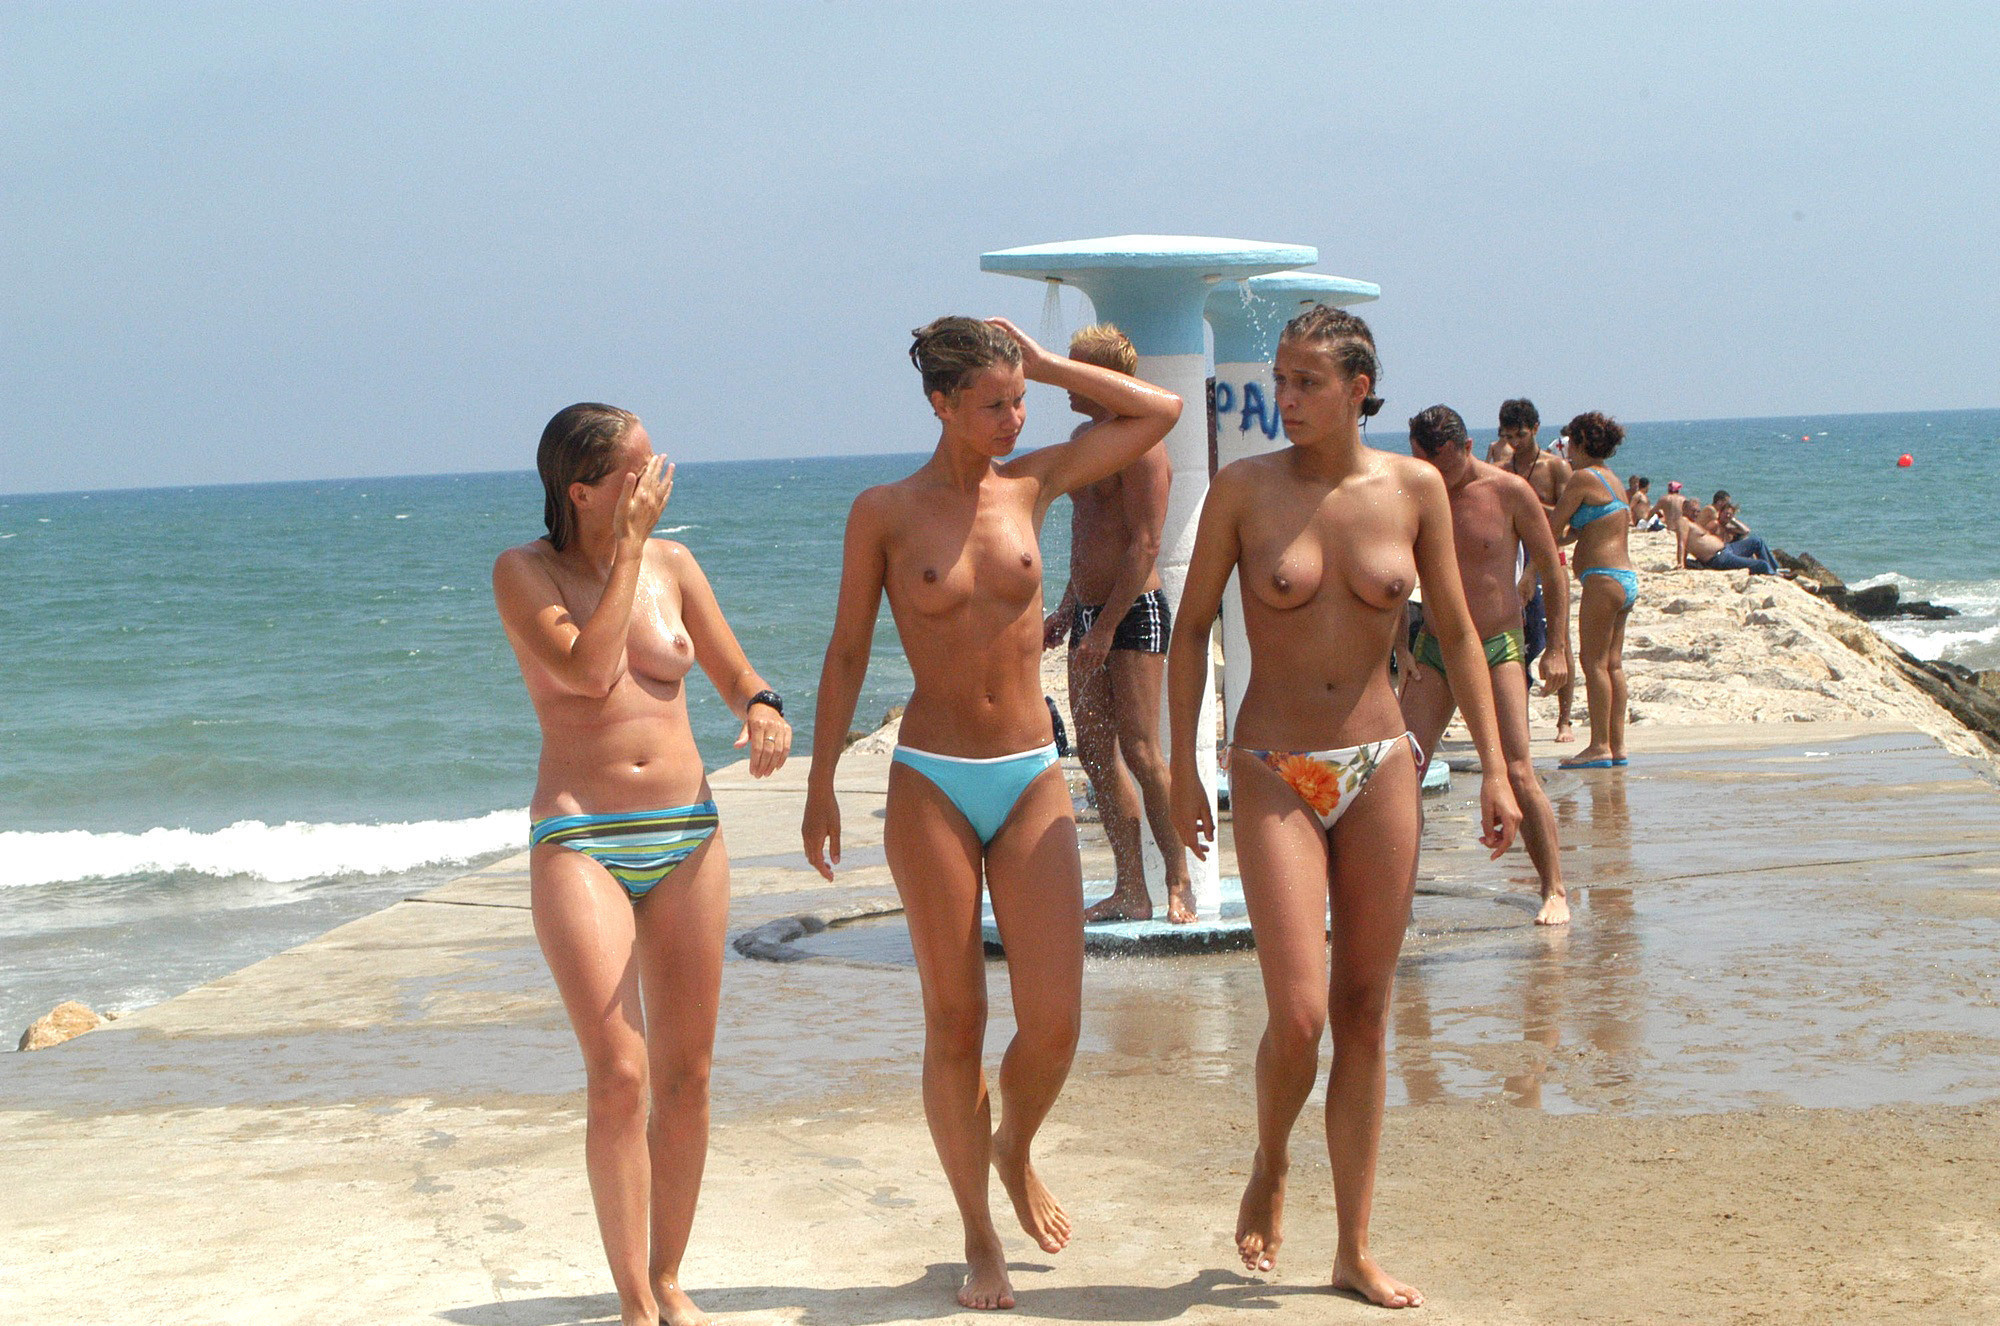 nudists-girls-boobs-beach-topless-mix-vol7-16